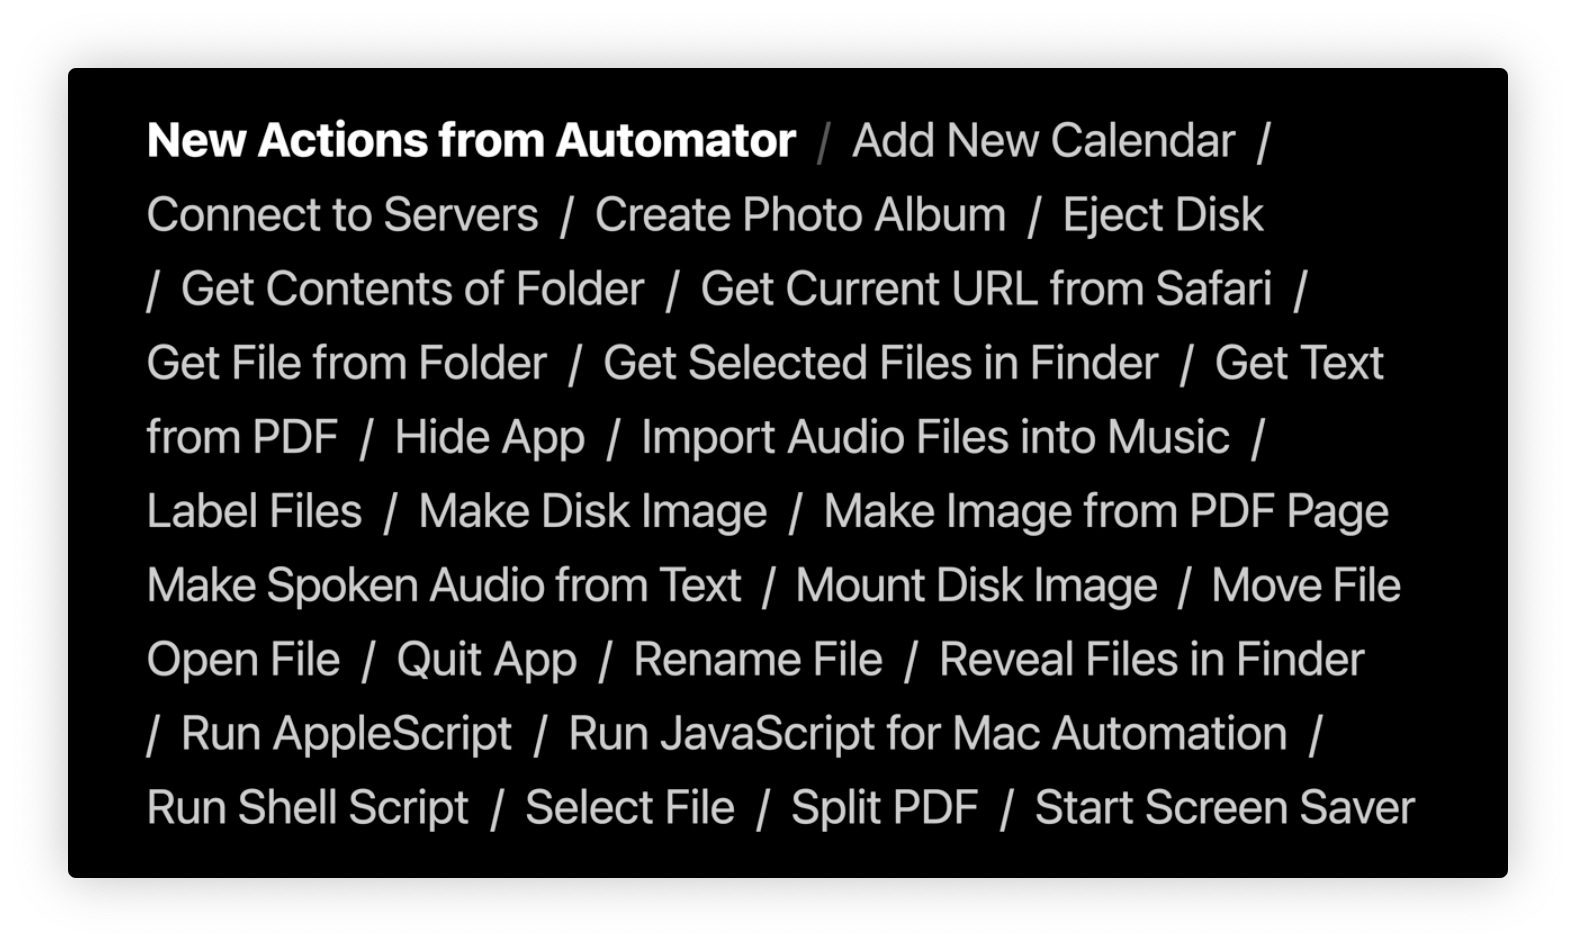 Shortcuts Actions based on Automator